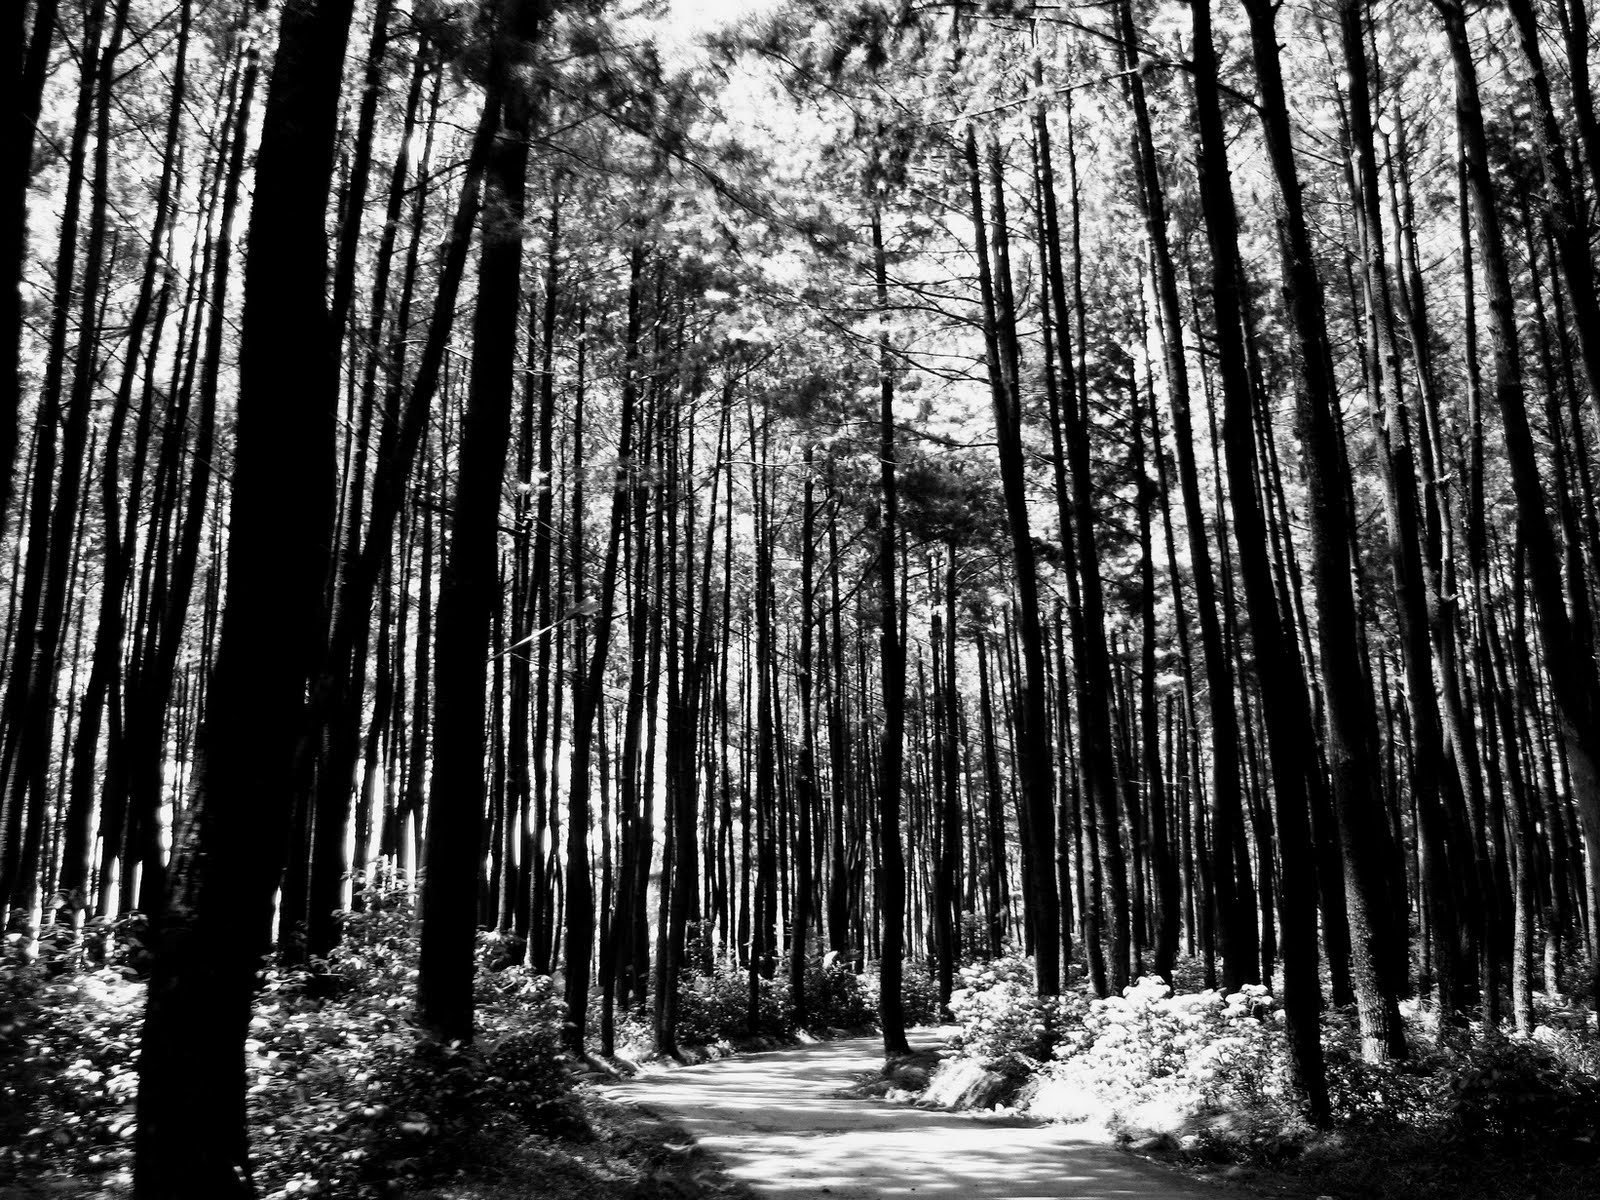 Black And White Forest Wallpaper   HD Wallpapers Pretty 1600x1200